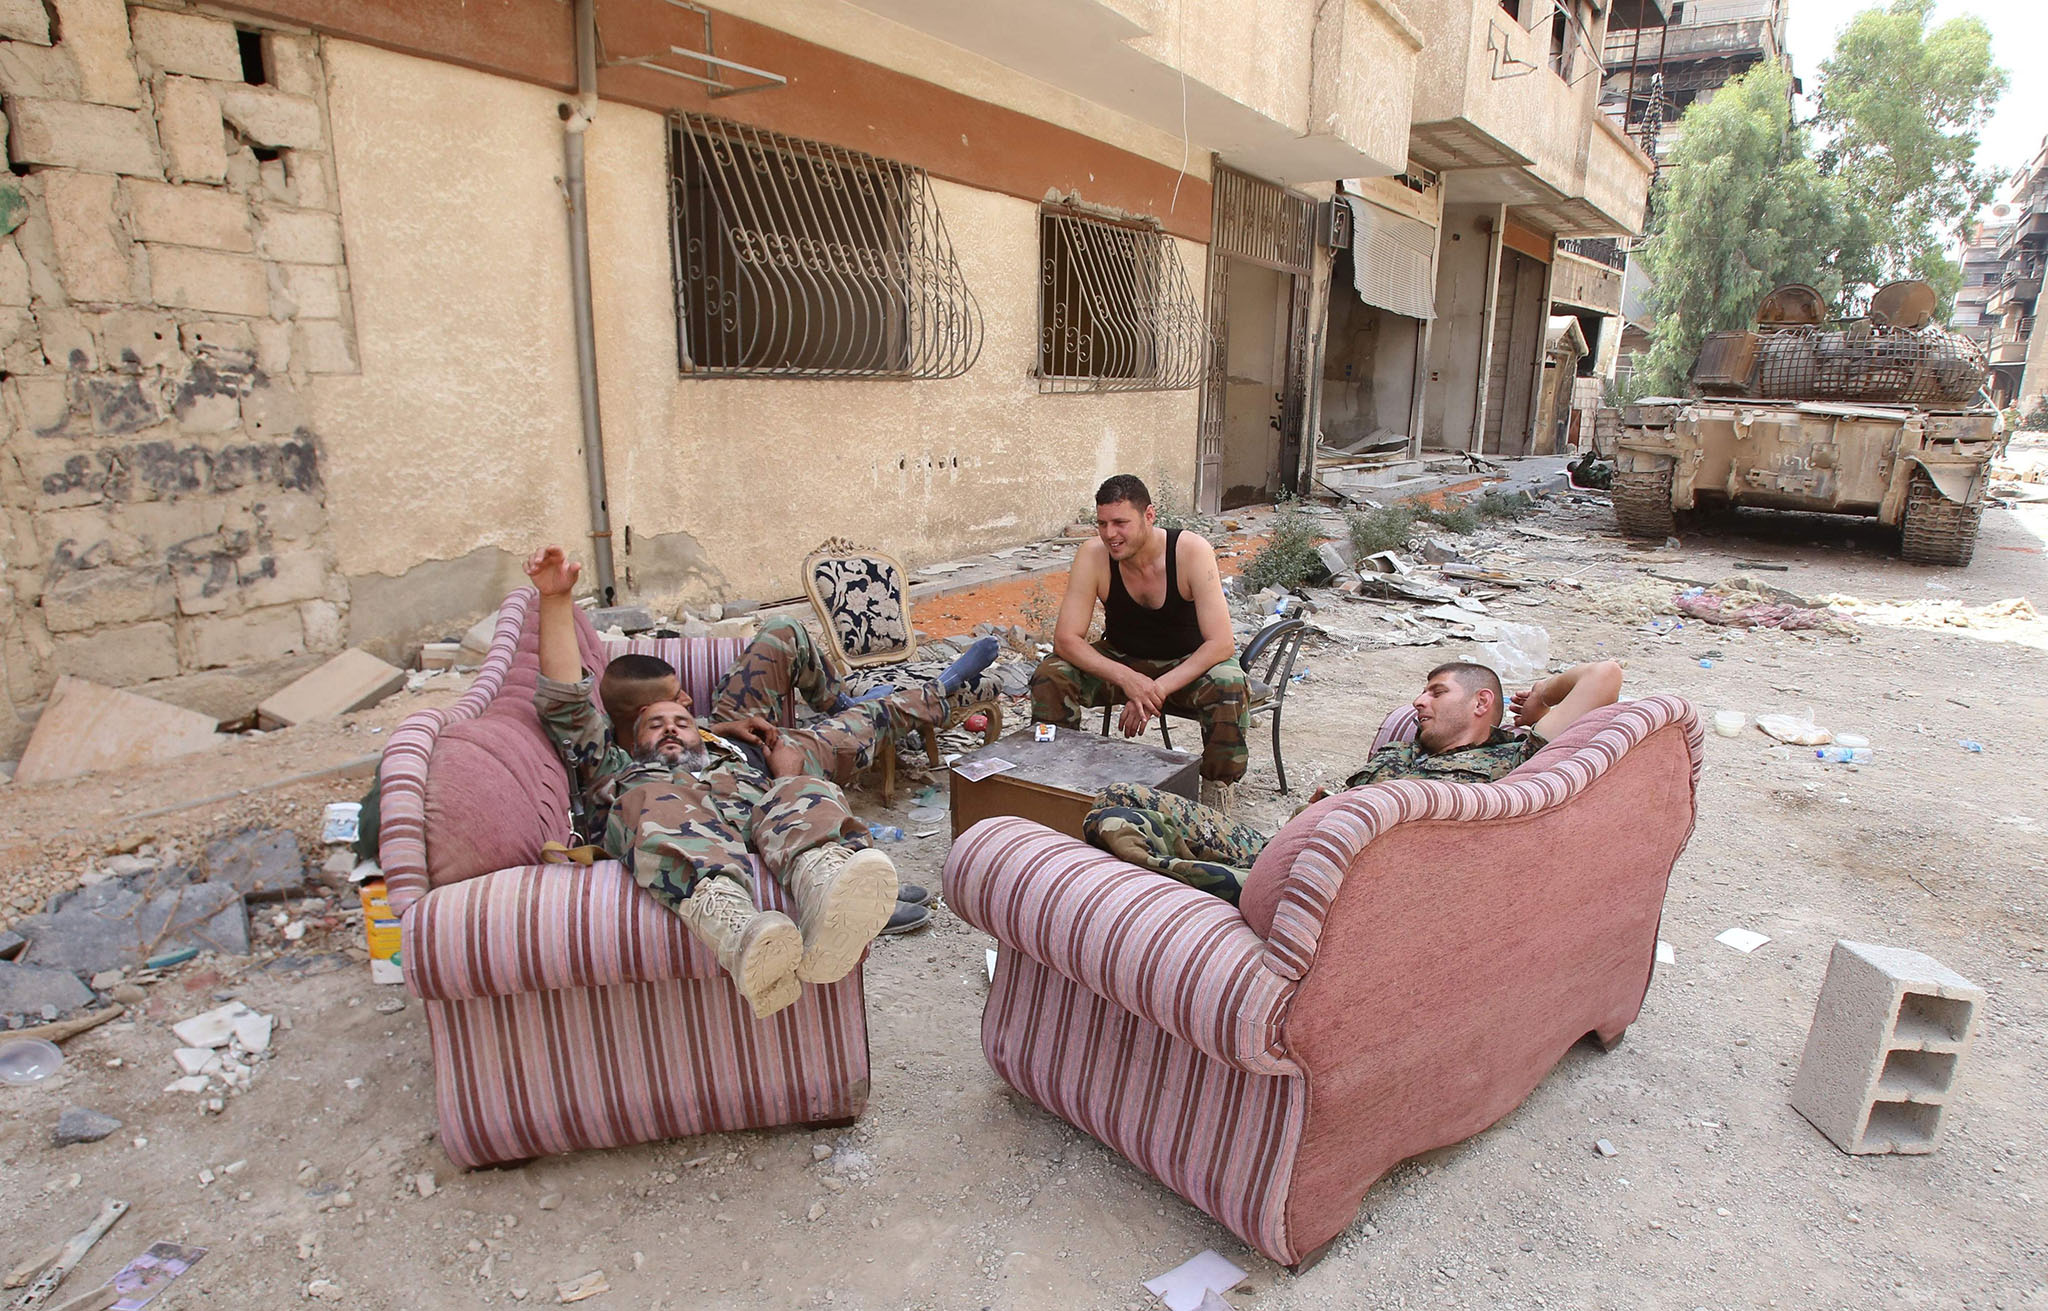 Syrian army soldiers rest in a street in the government-controlled part of the besieged town of Daraya on August 26, 2016, as thousands of rebel fighters and civilians prepared to evacuate under an accord struck a day earlier.  An estimated 8,000 people remain in the town, despite a government siege lasting four years and regular regime bombardment.    / AFP PHOTO / Youssef KARWASHANYOUSSEF KARWASHAN/AFP/Getty Images